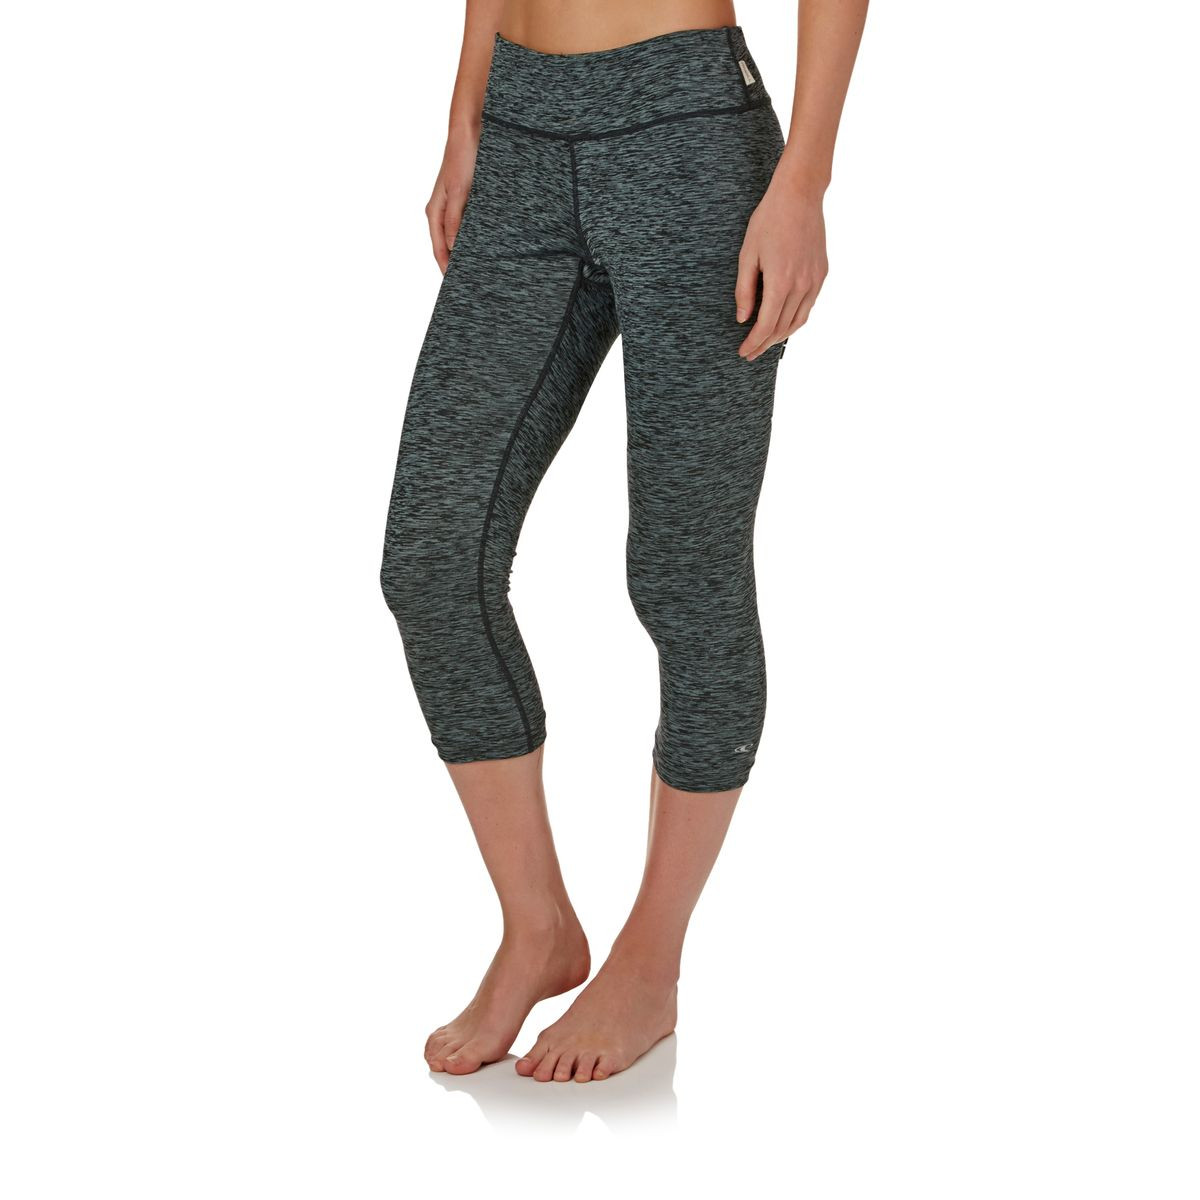 O'Neill Womens Hybrid Surf Capri Surf Leggings - Graphite